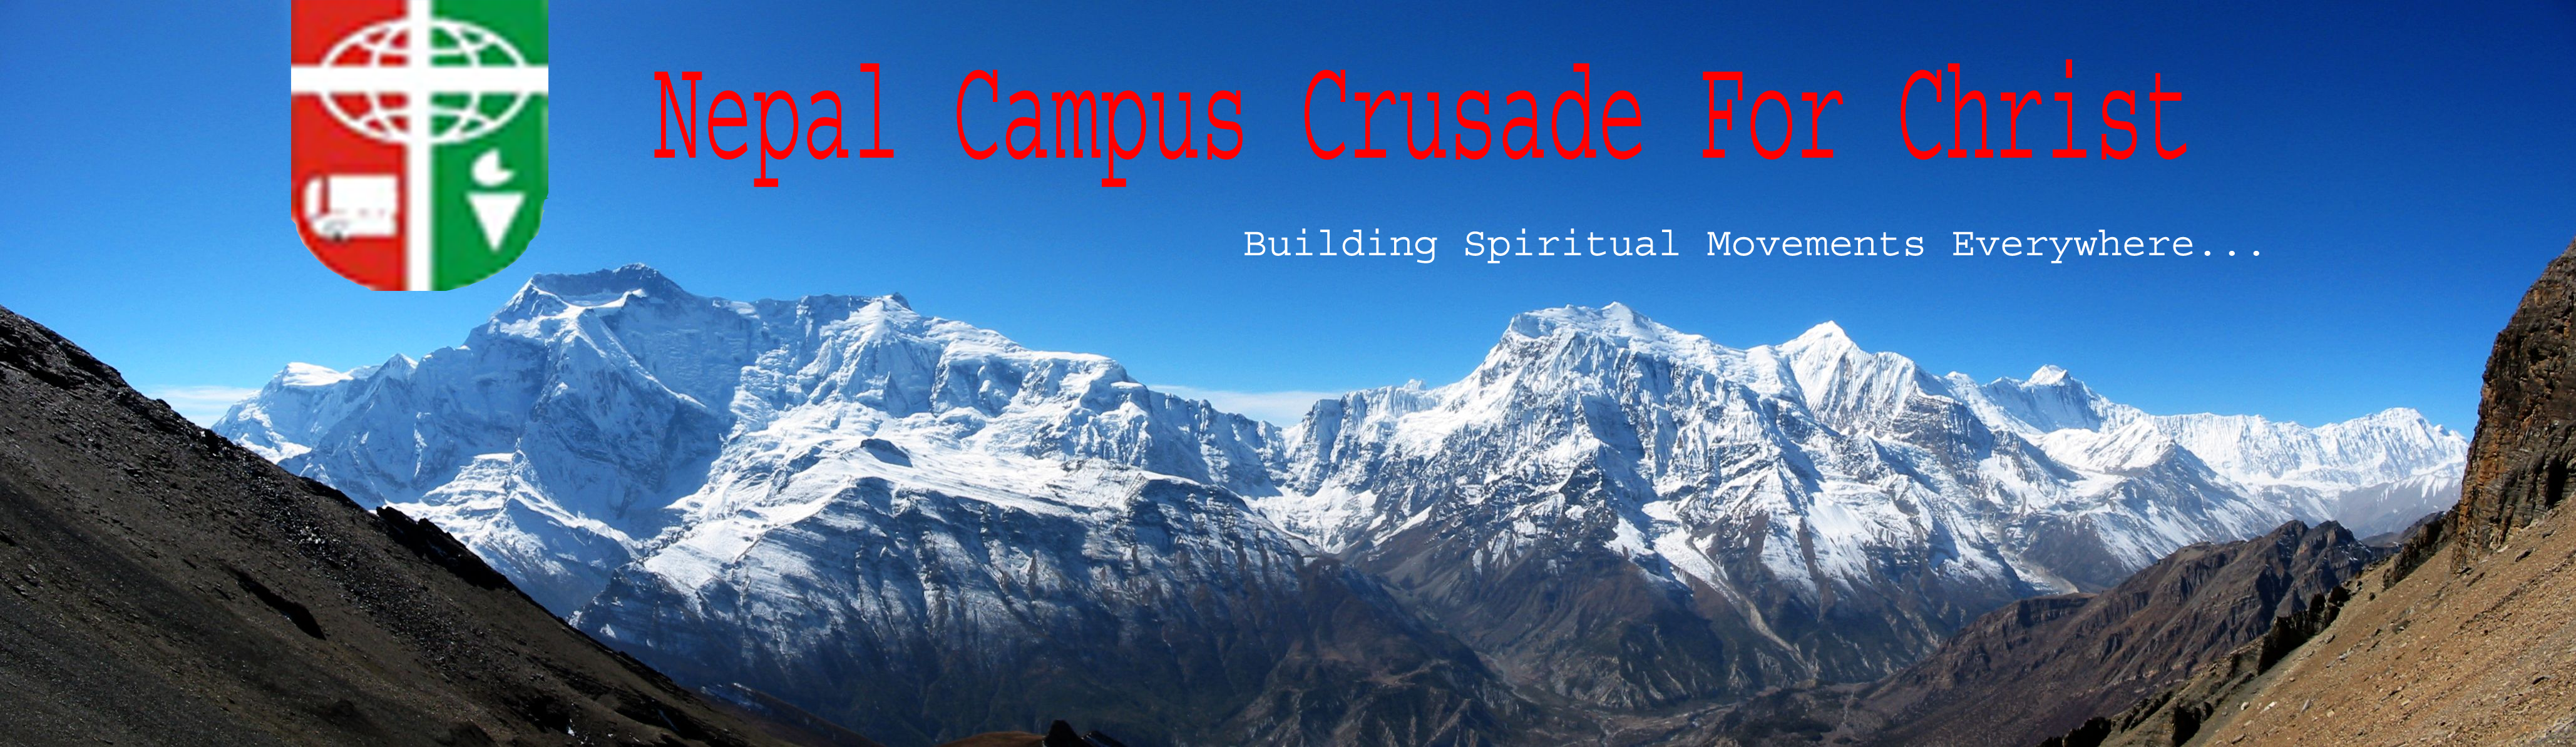 Nepal Campus Crusade for Christ